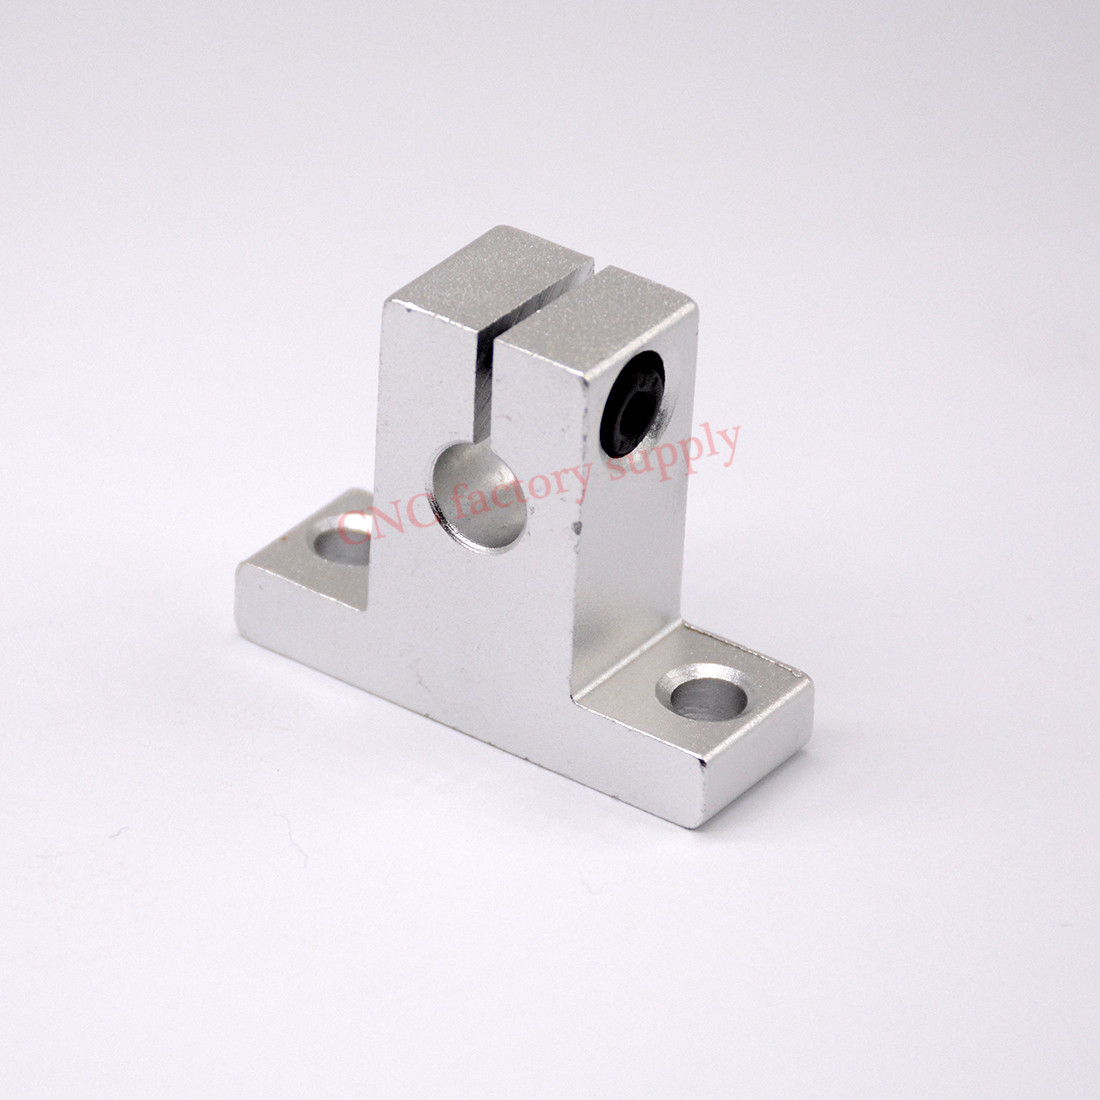 Hot sale 1pc SK12 12mm linear bearing rail shaft support XYZ Table CNC Router SH12A hot sale 1pc lm12uu linear bushing 12mm cnc linear bearings